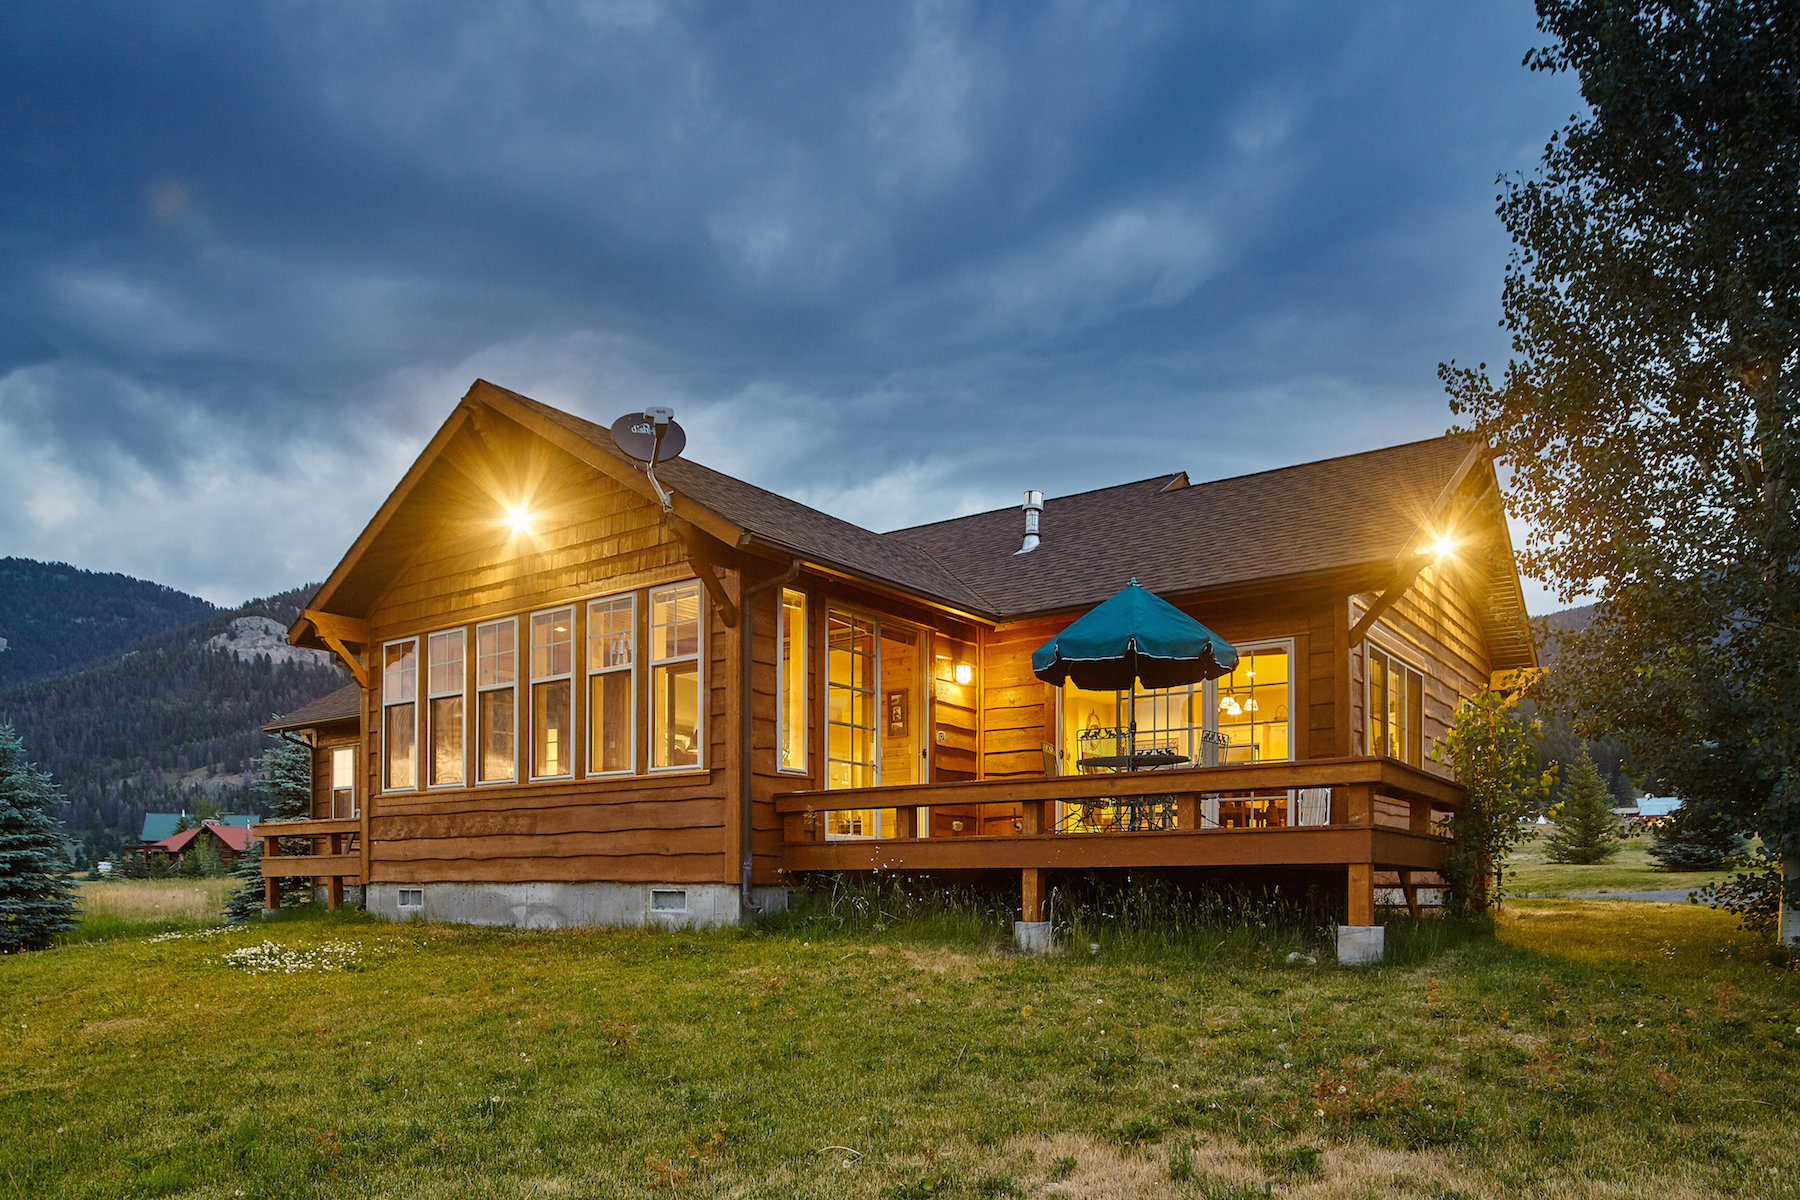 Casa Unifamiliar por un Venta en 91 Manor Way West Yellowstone, Montana, 59758 Estados Unidos